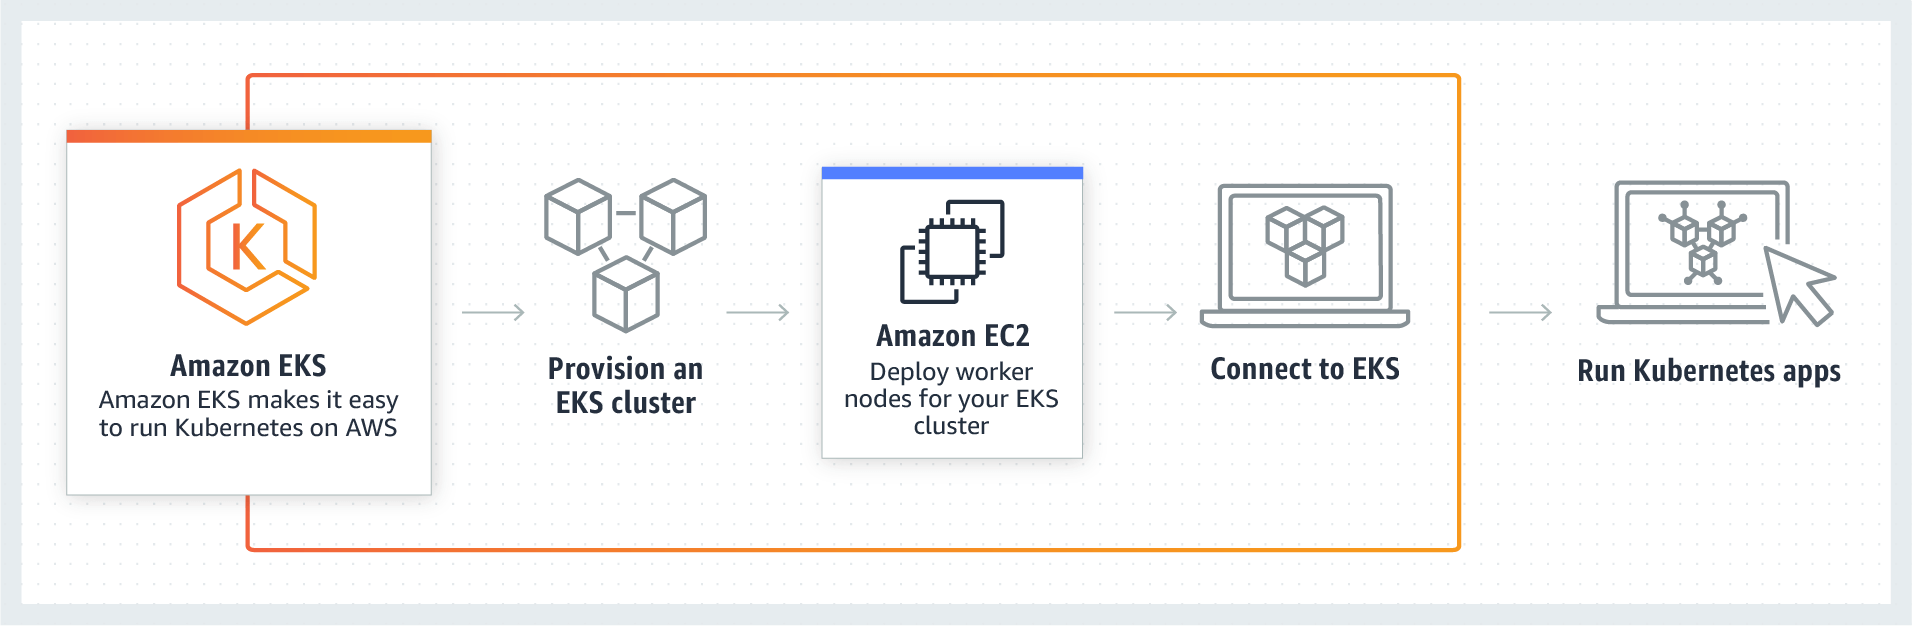 My First Kubernetes Cluster: A Review of Amazon EKS